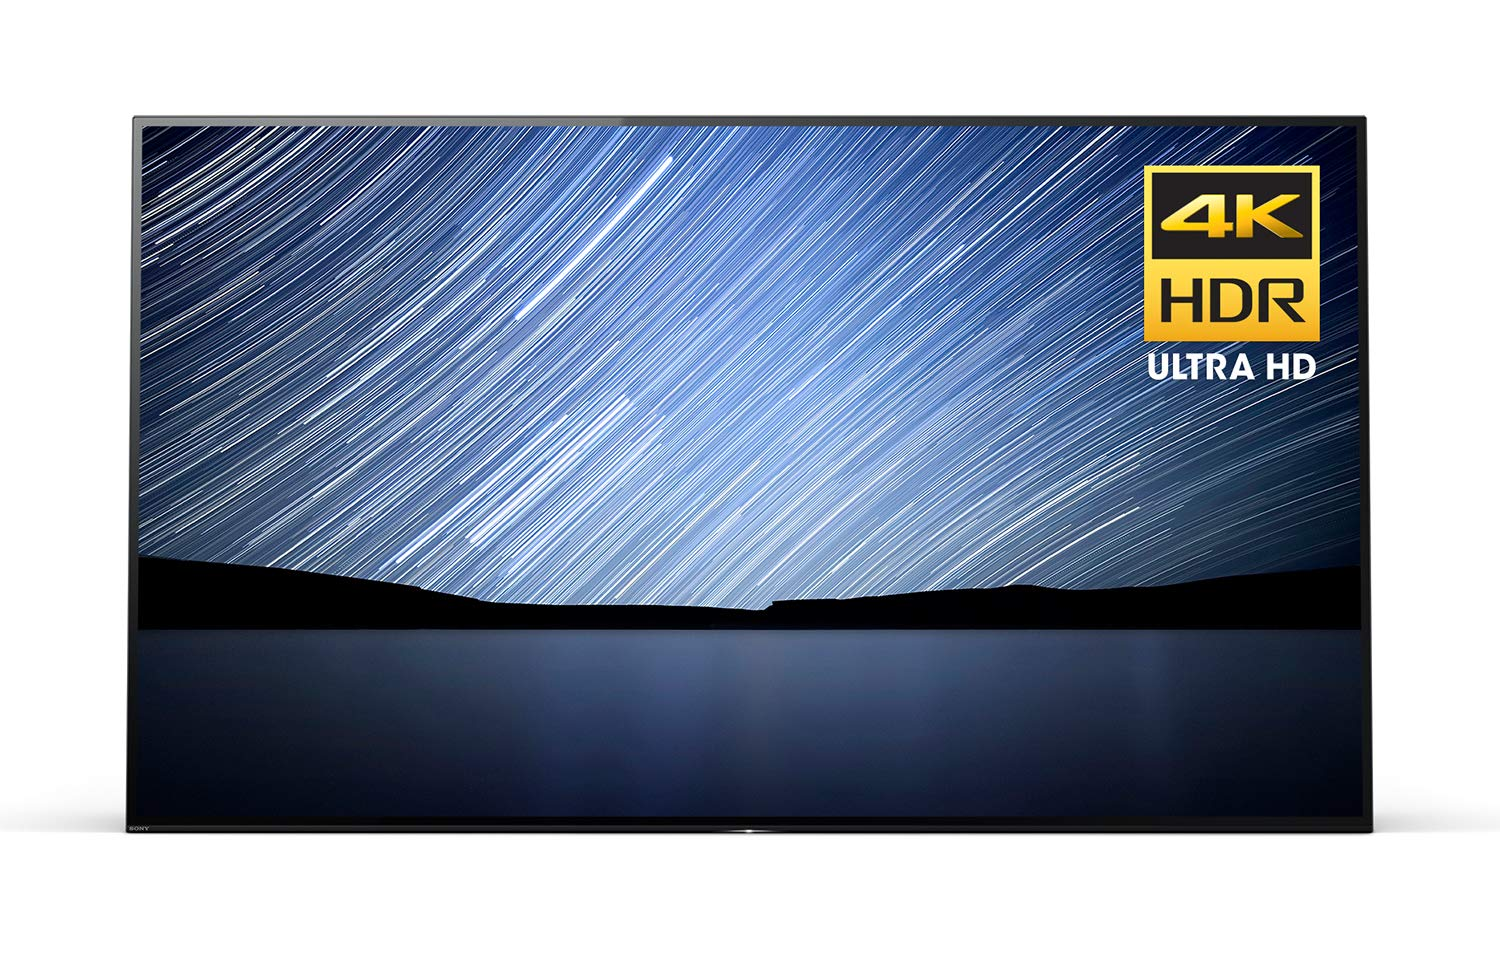 Sony BRAVIA A1 4K TV Black Friday Deals 2019